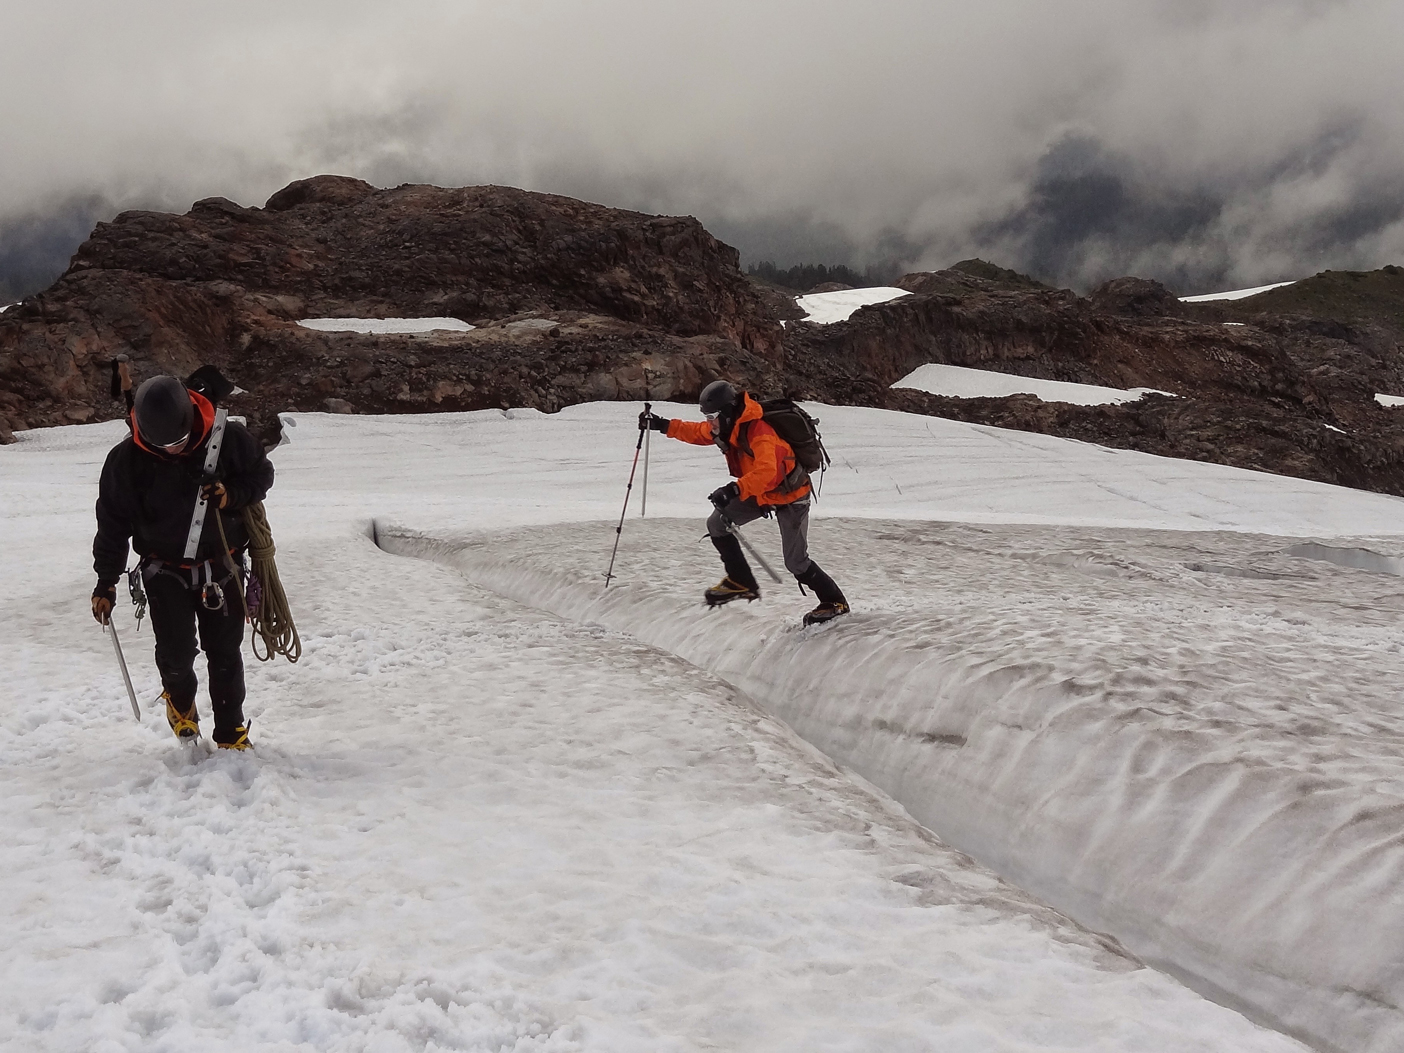 Tomas and I traversing the glacier on the way to our second crack climb site of the day. Photo by Jesica Mangun.